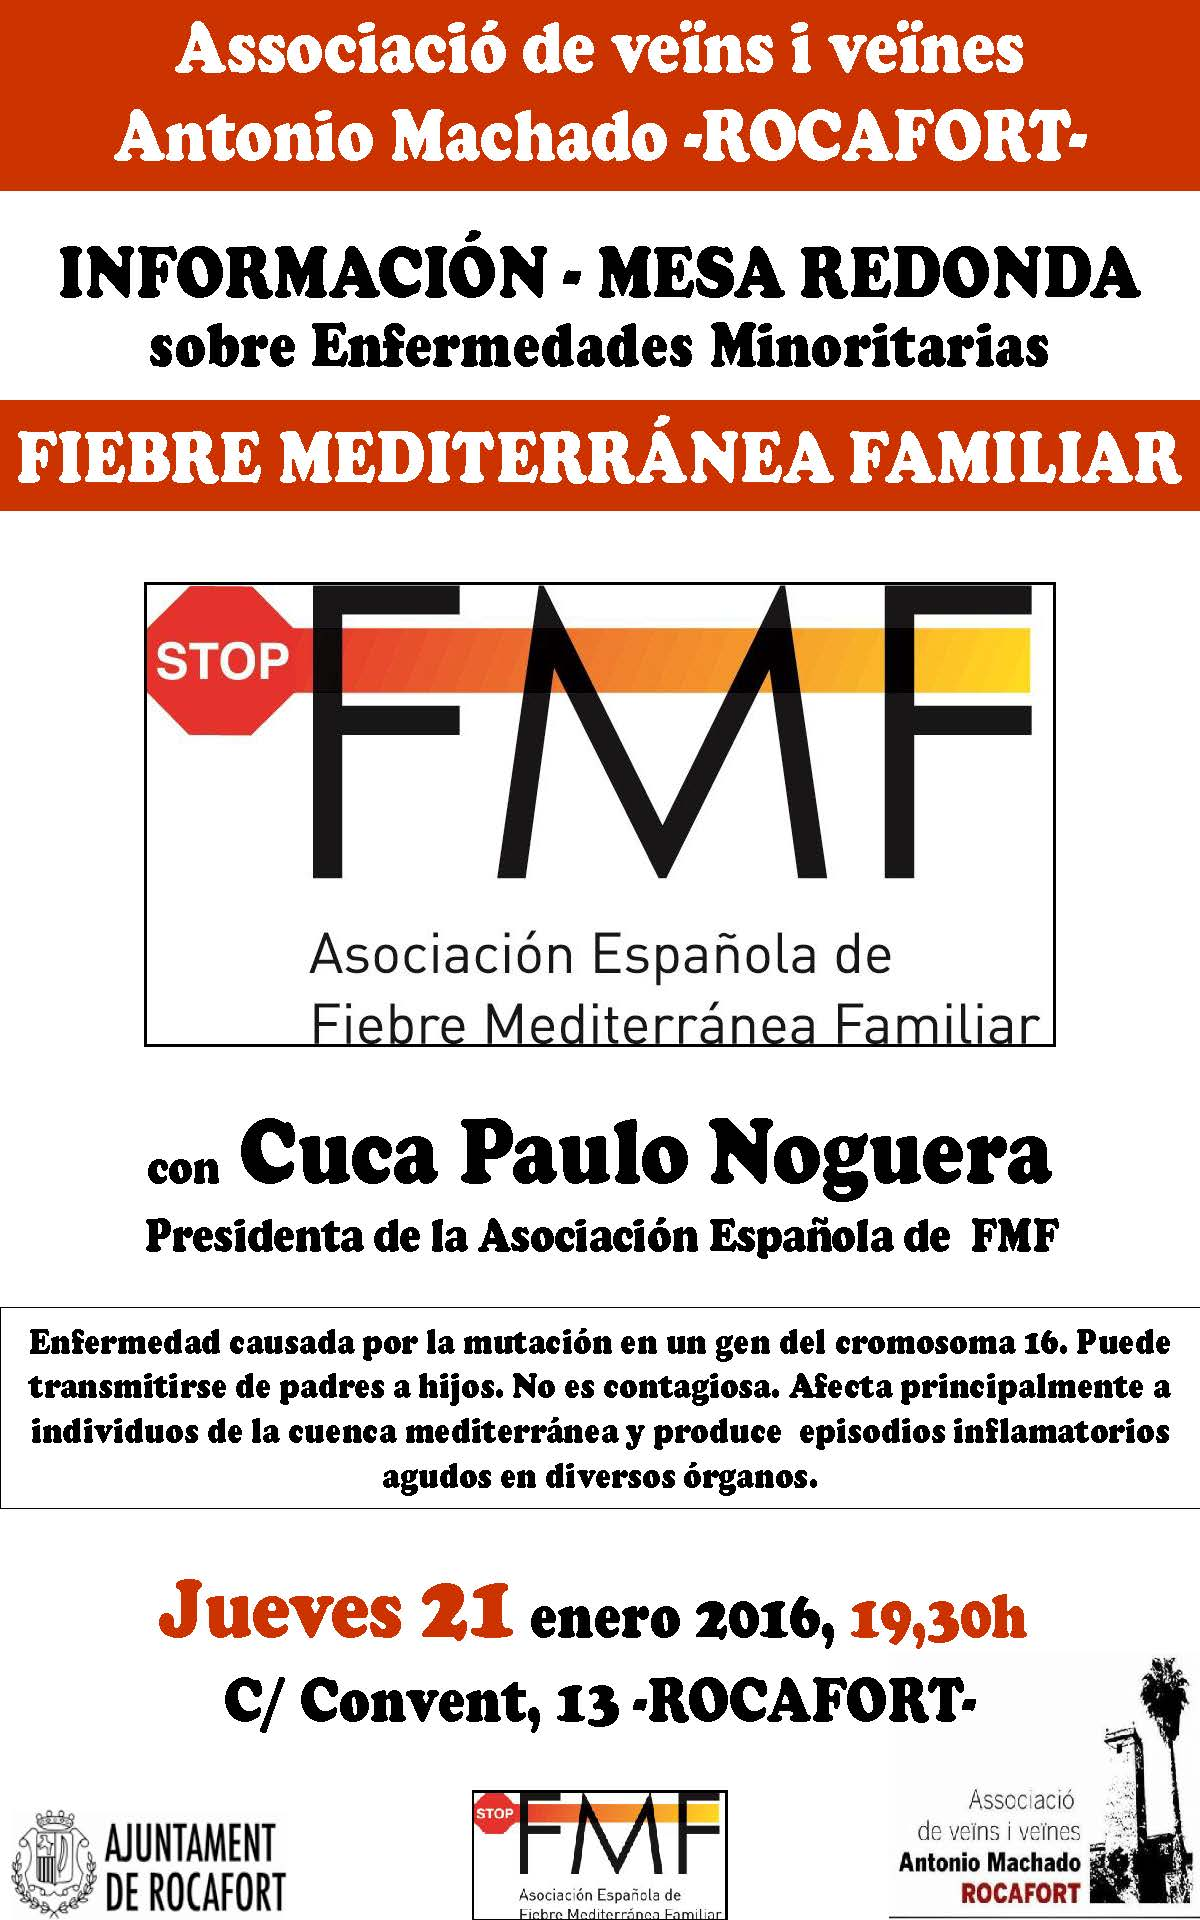 FIEBRE MEDITERRANEA FAMILIAR